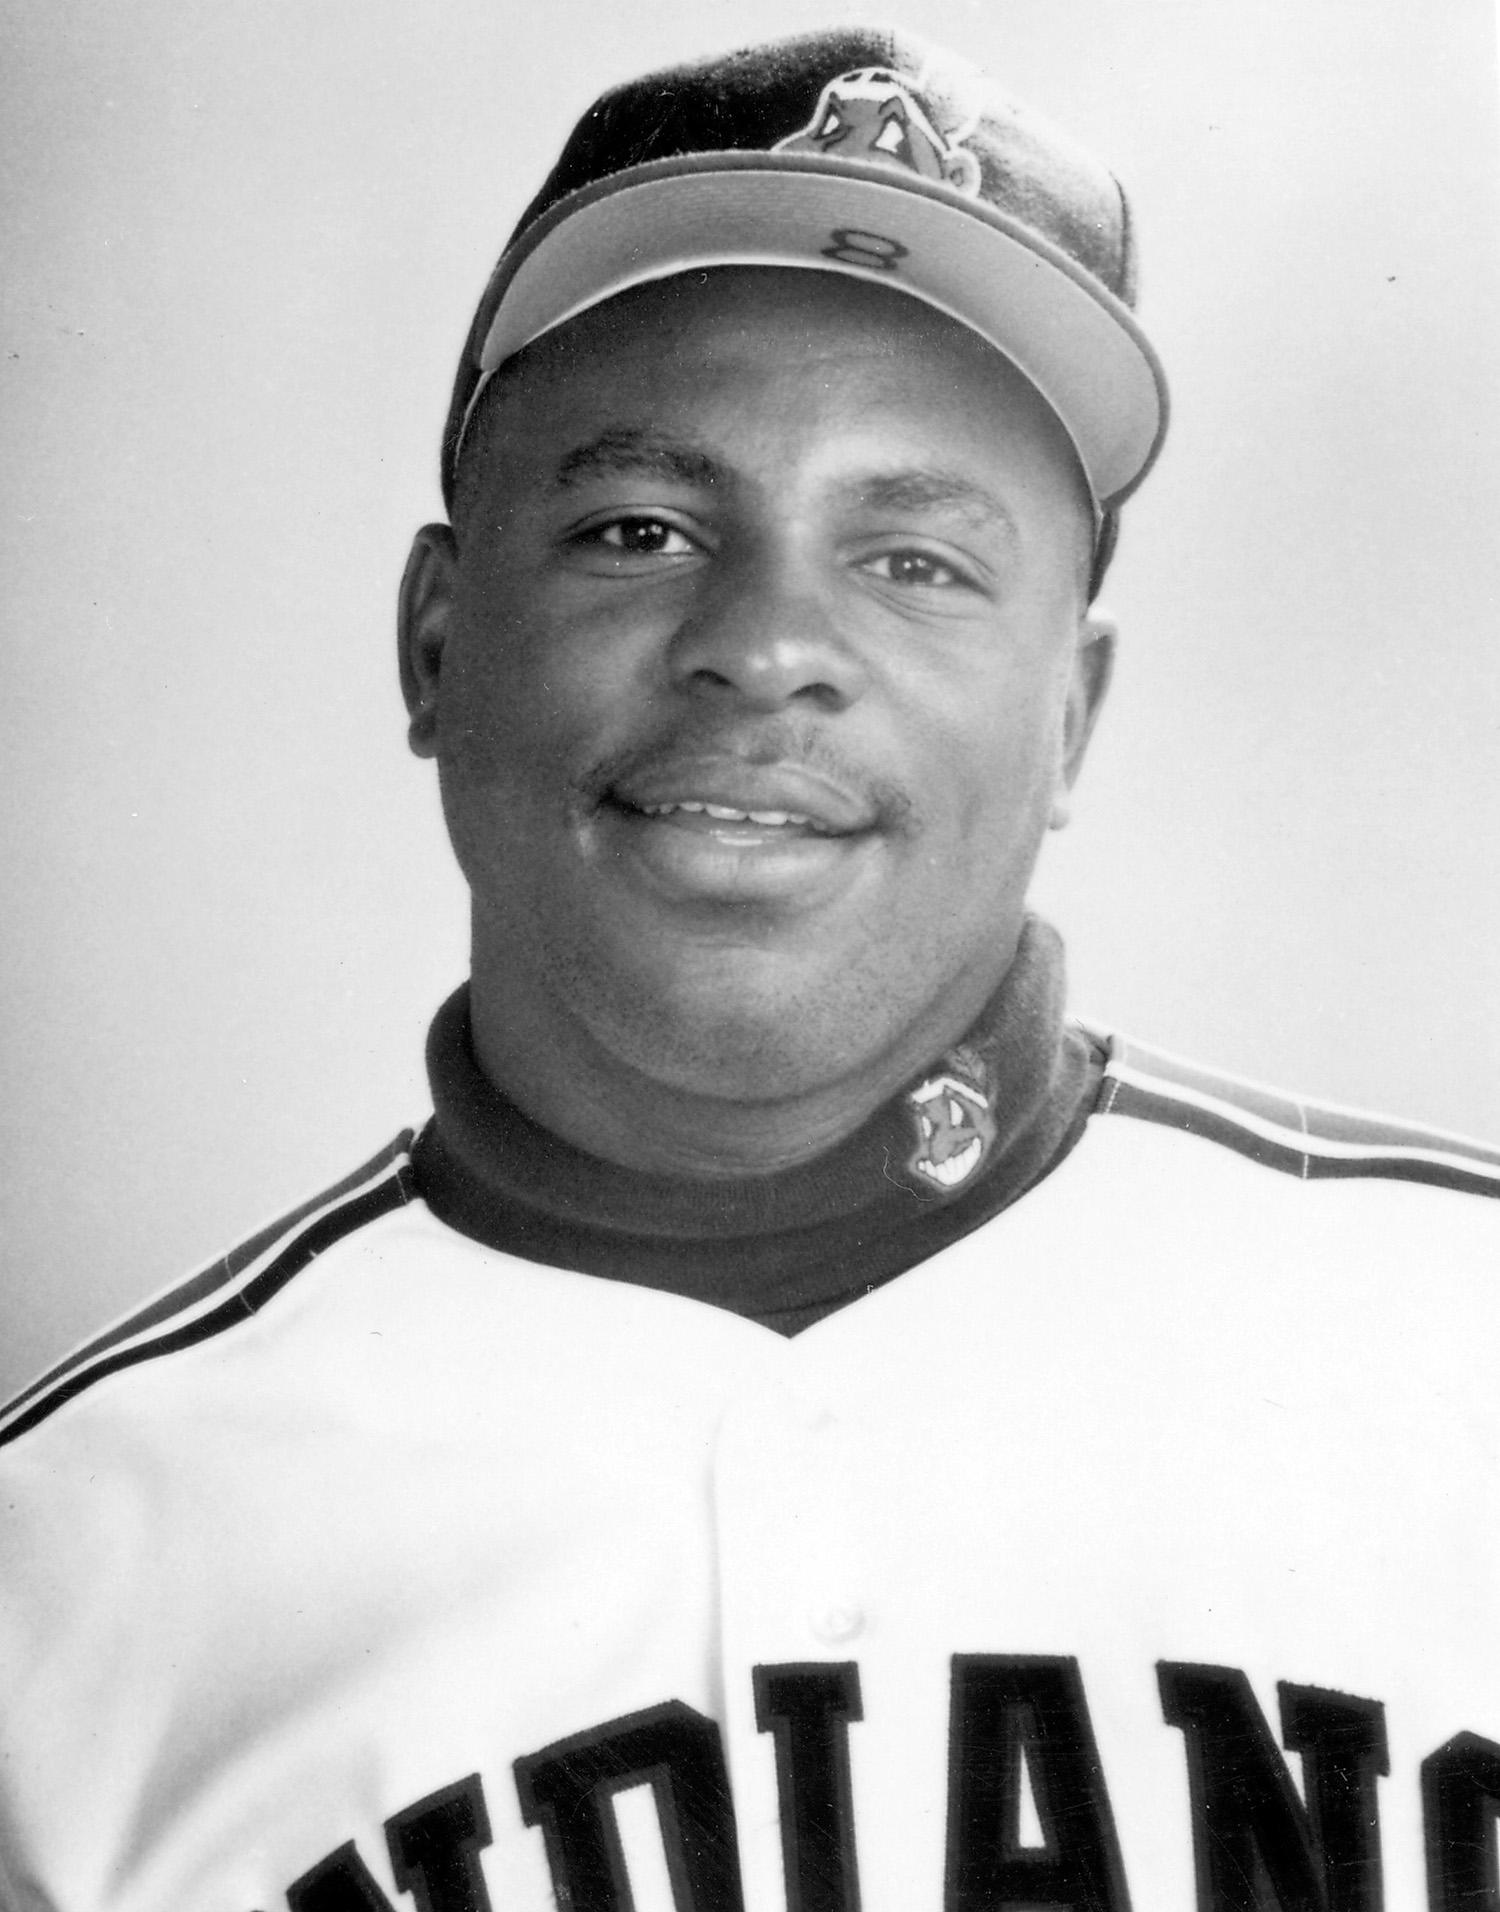 Albert Belle was taken by the Cleveland Indians in the second round of the 1987 MLB Draft and quickly rose through their system, debuting in the big leagues in 1989. (National Baseball Hall of Fame)